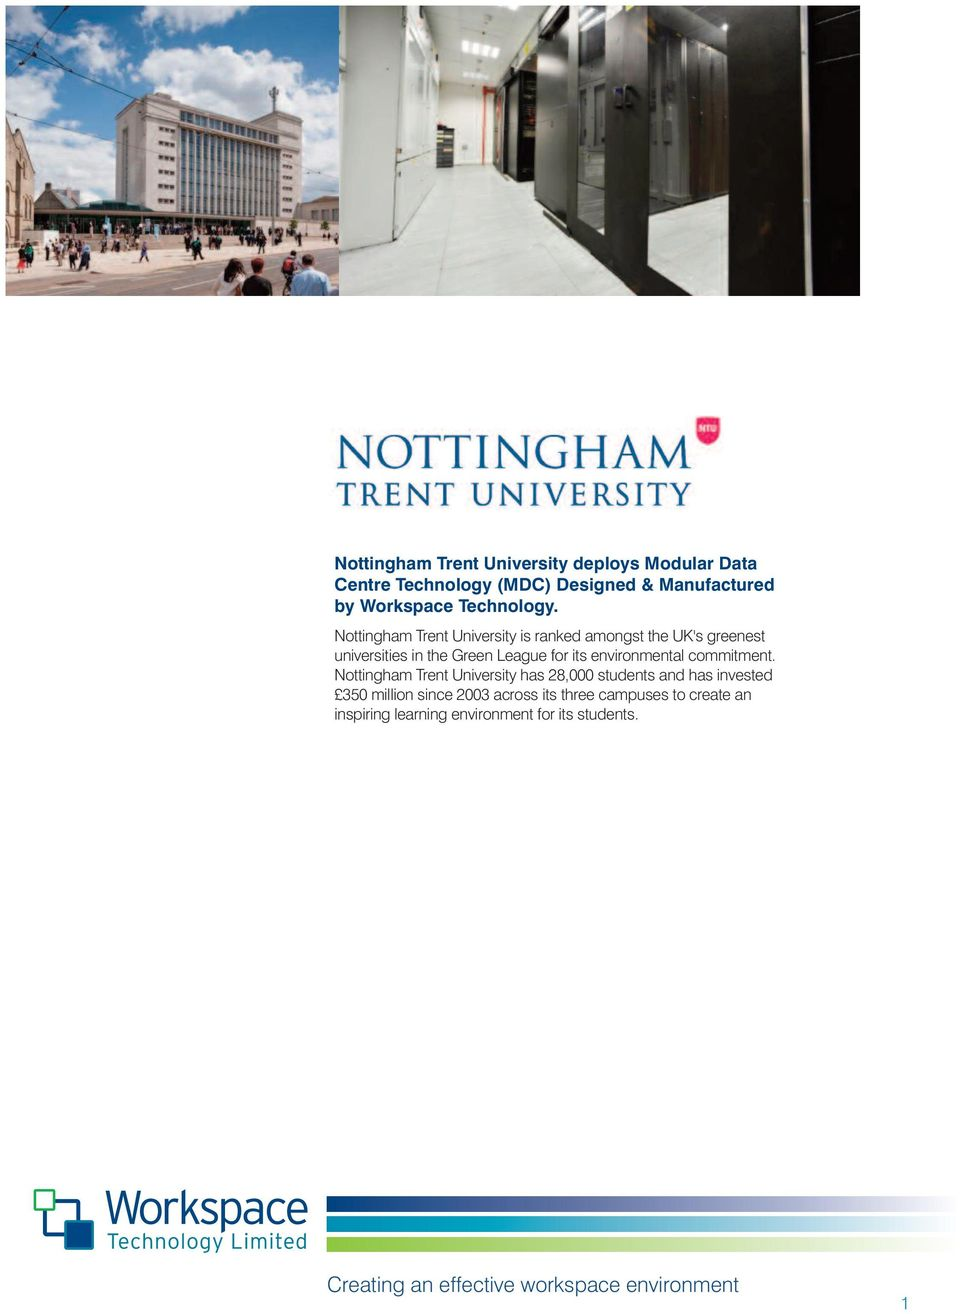 Nottingham Trent University is ranked amongst the UK's greenest universities in the Green League for its